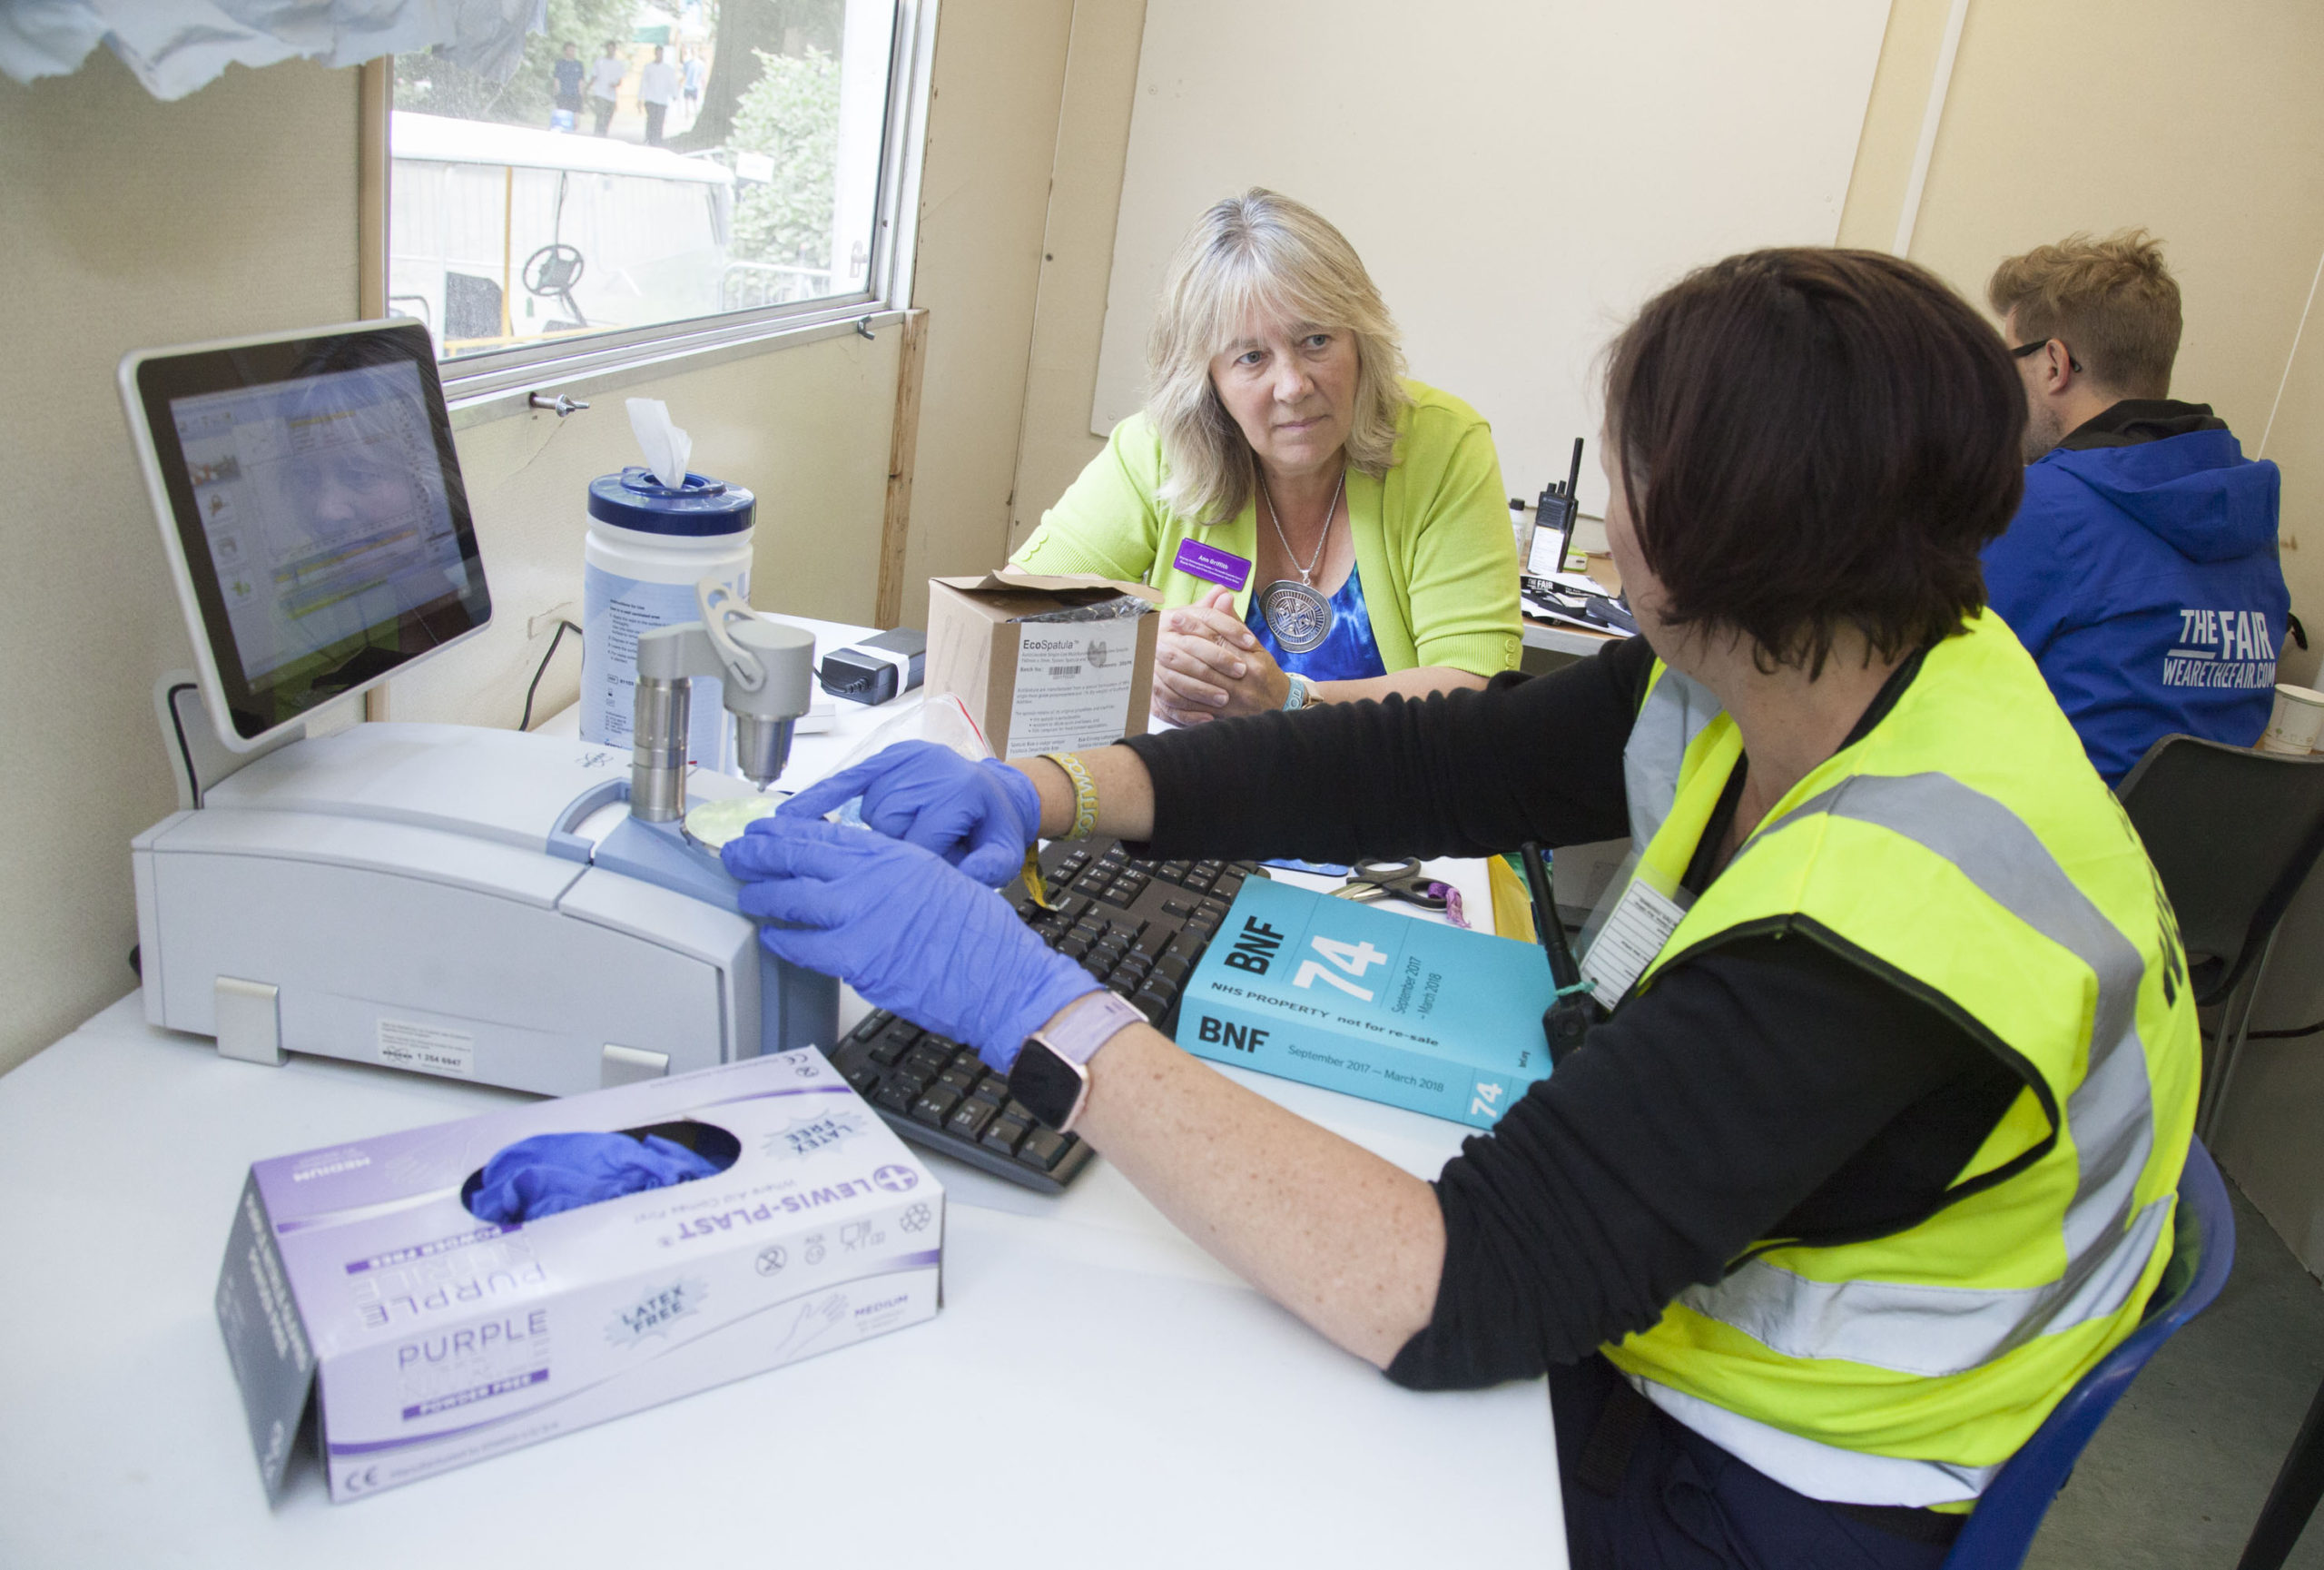 Deputy Police Crime Commissioner Ann Griffith visits Gottwood Festival in Anglesey and visits the Drug Test Area where drugs are tested for purity